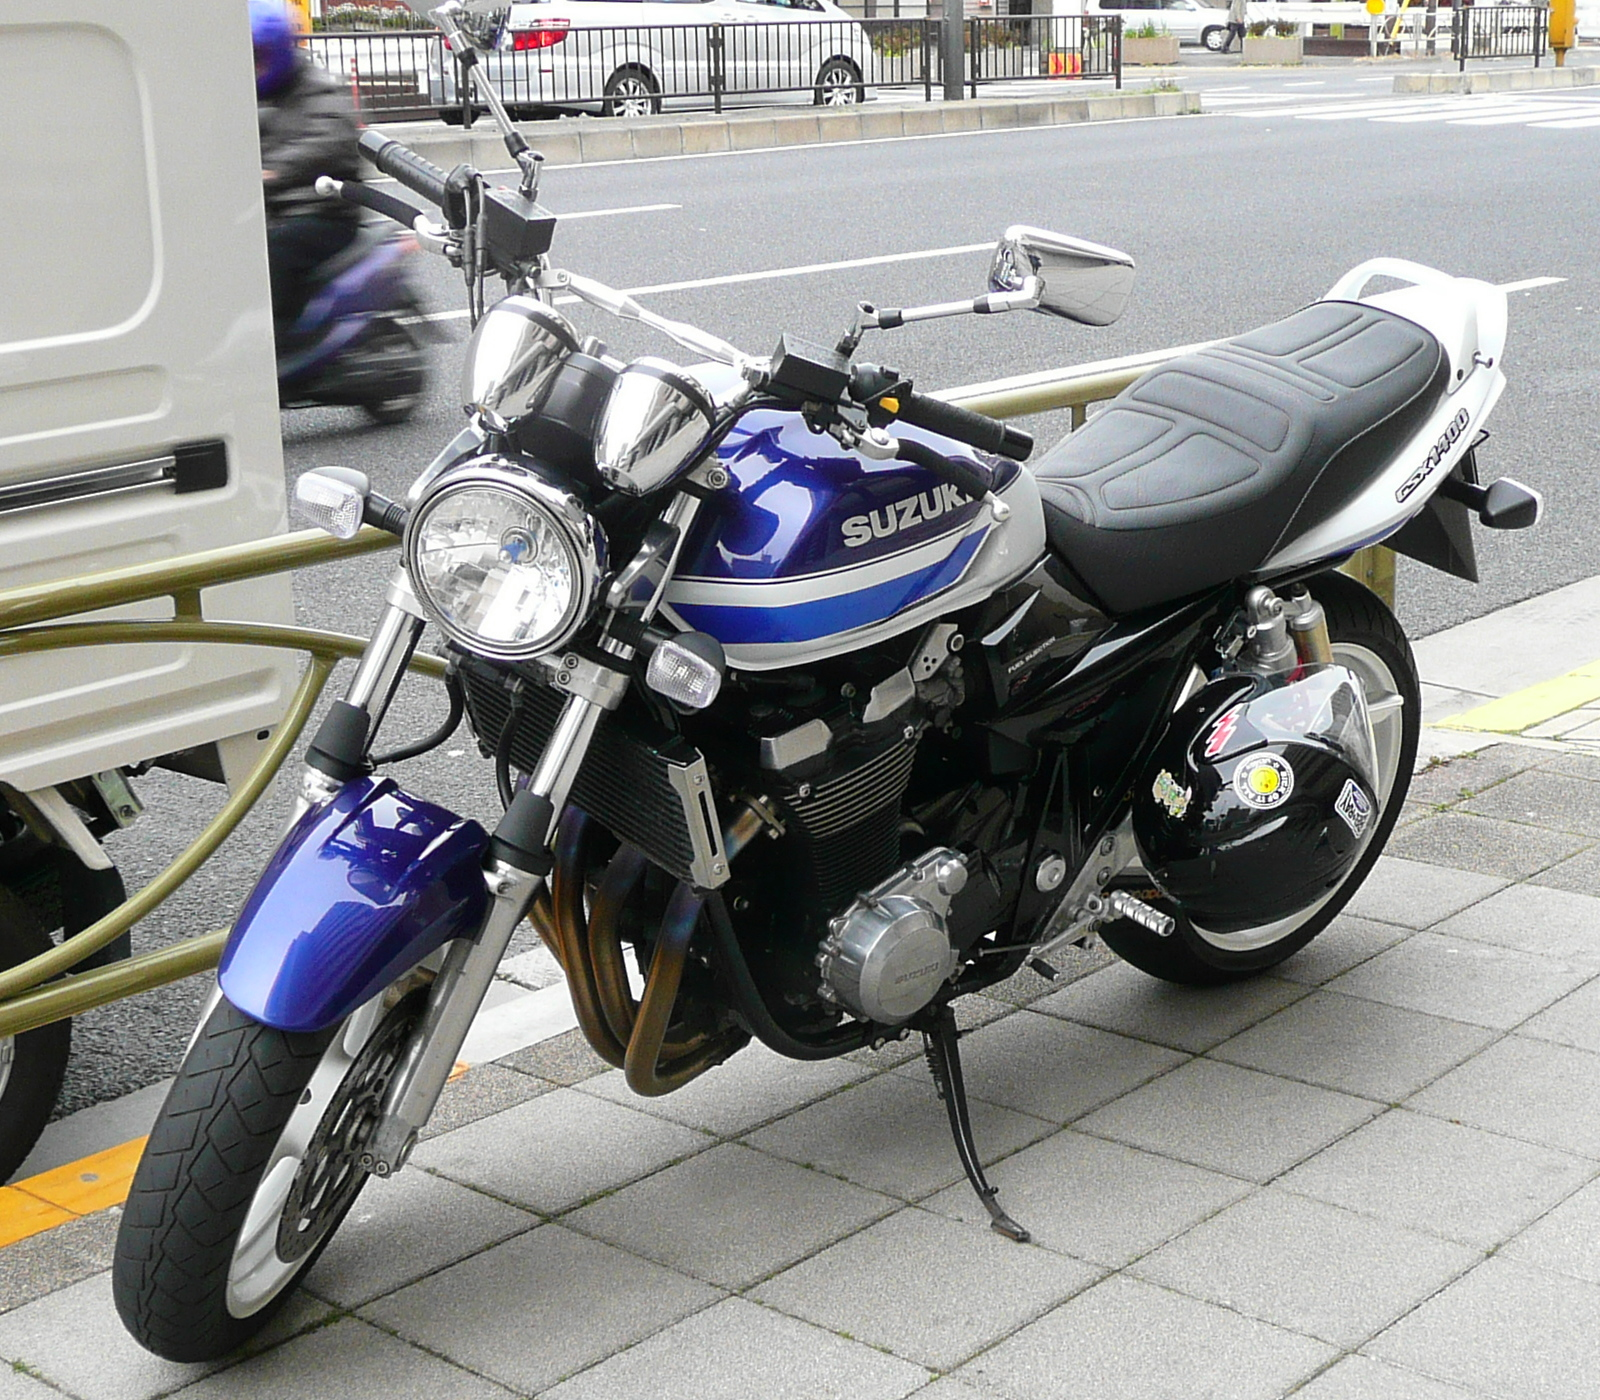 Joe S Suzuki World